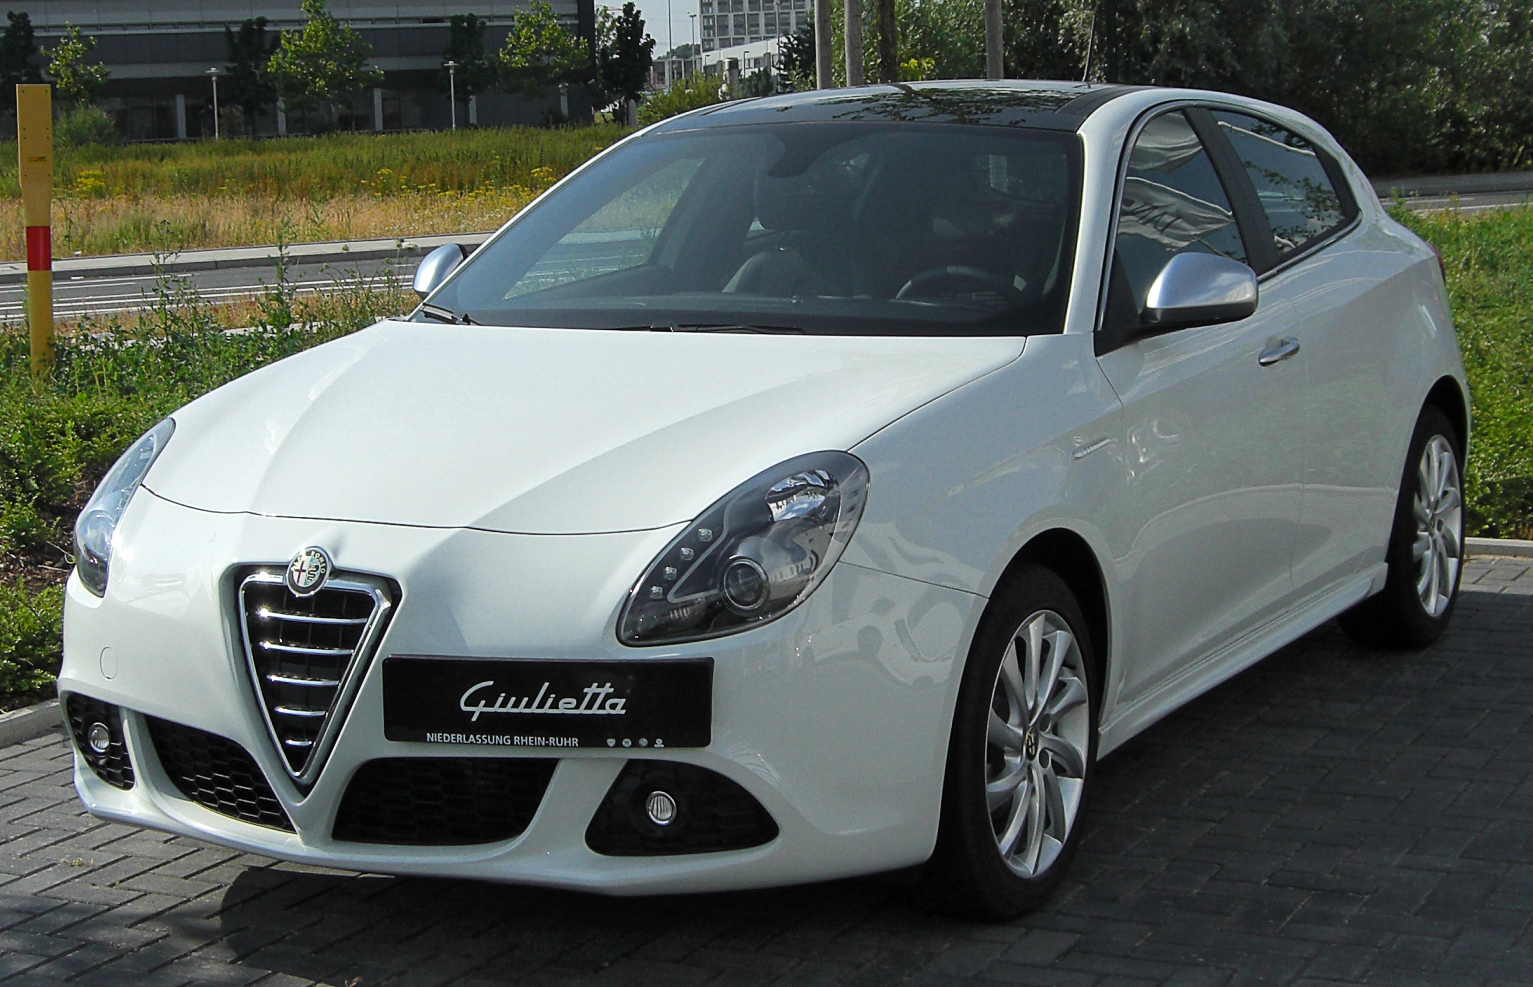 file alfa romeo giulietta front wikimedia. Black Bedroom Furniture Sets. Home Design Ideas